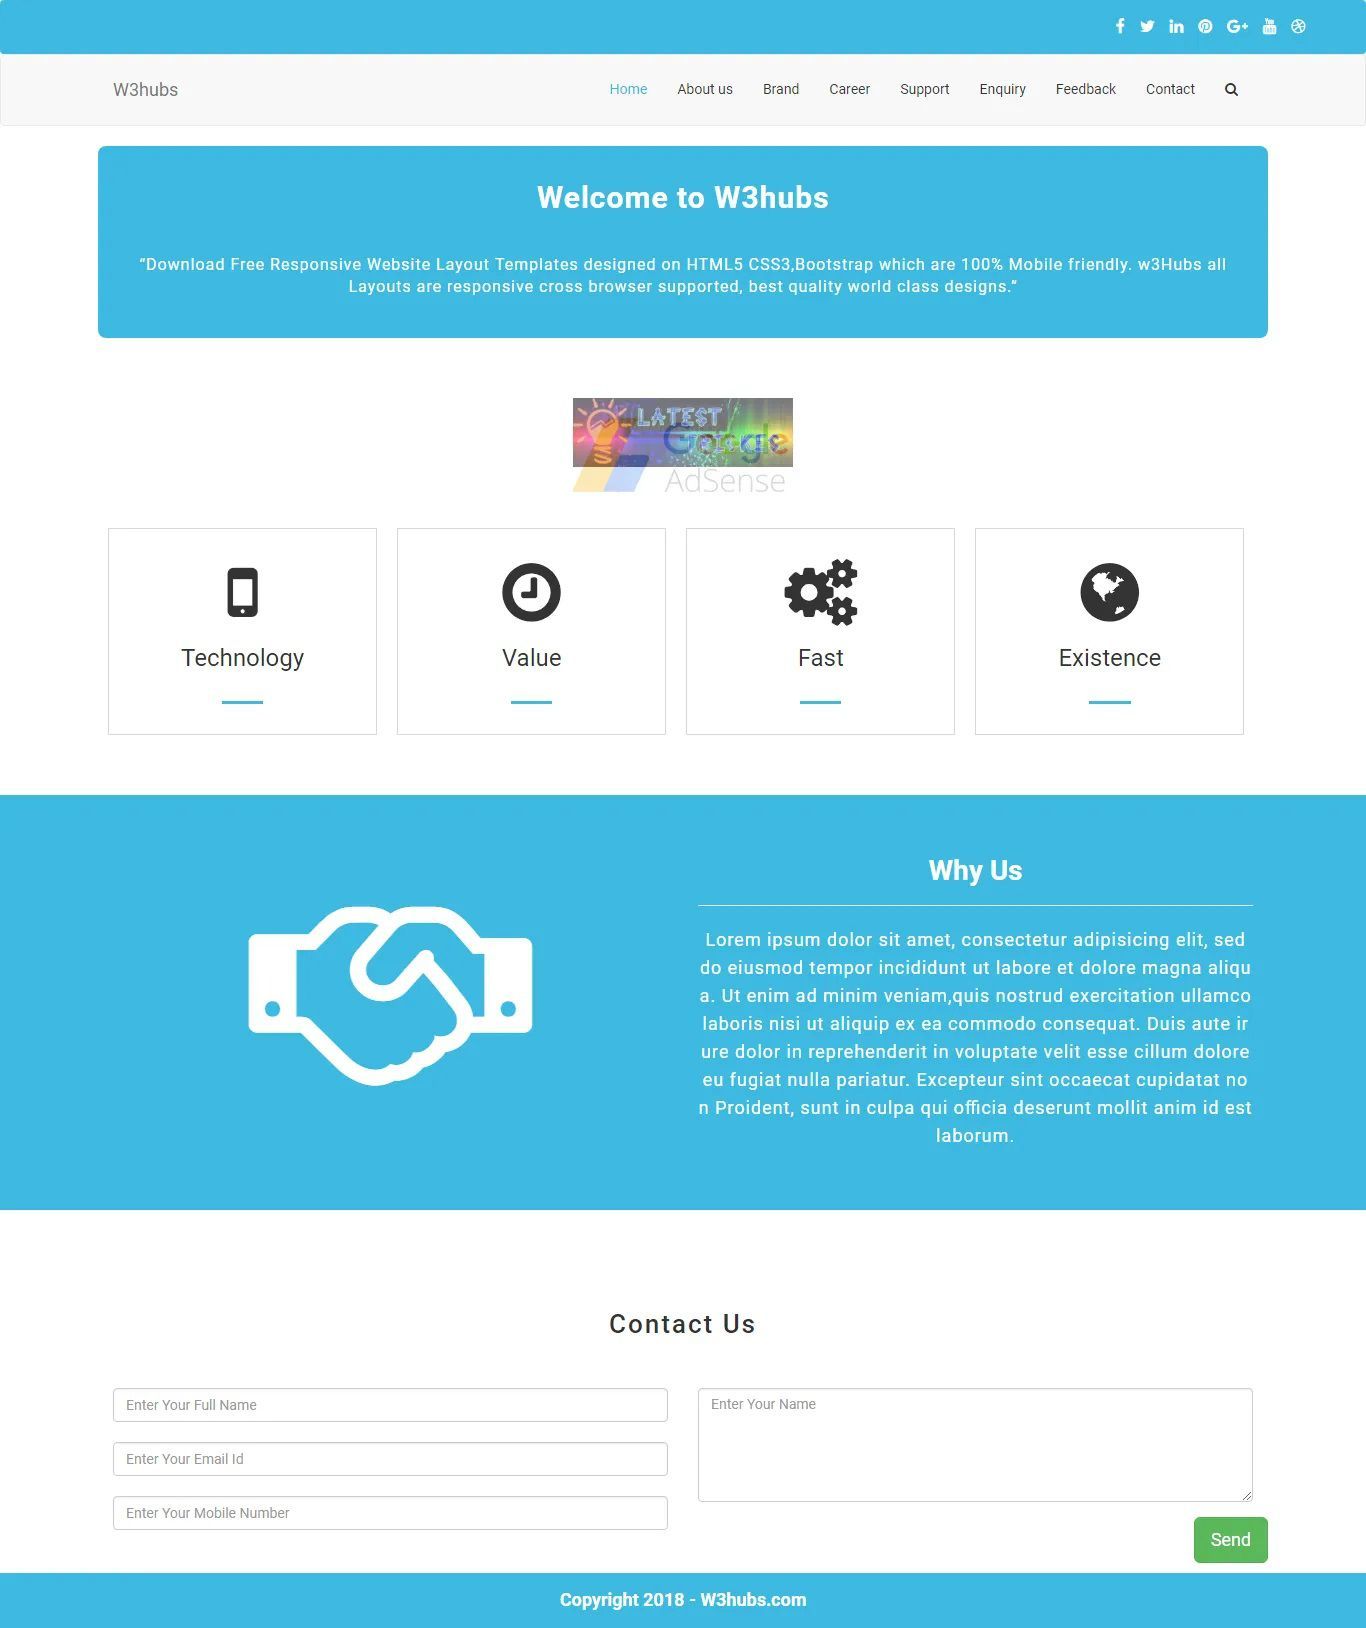 007 Unbelievable Free Php Website Template Photo  Download And Cs Full Theme